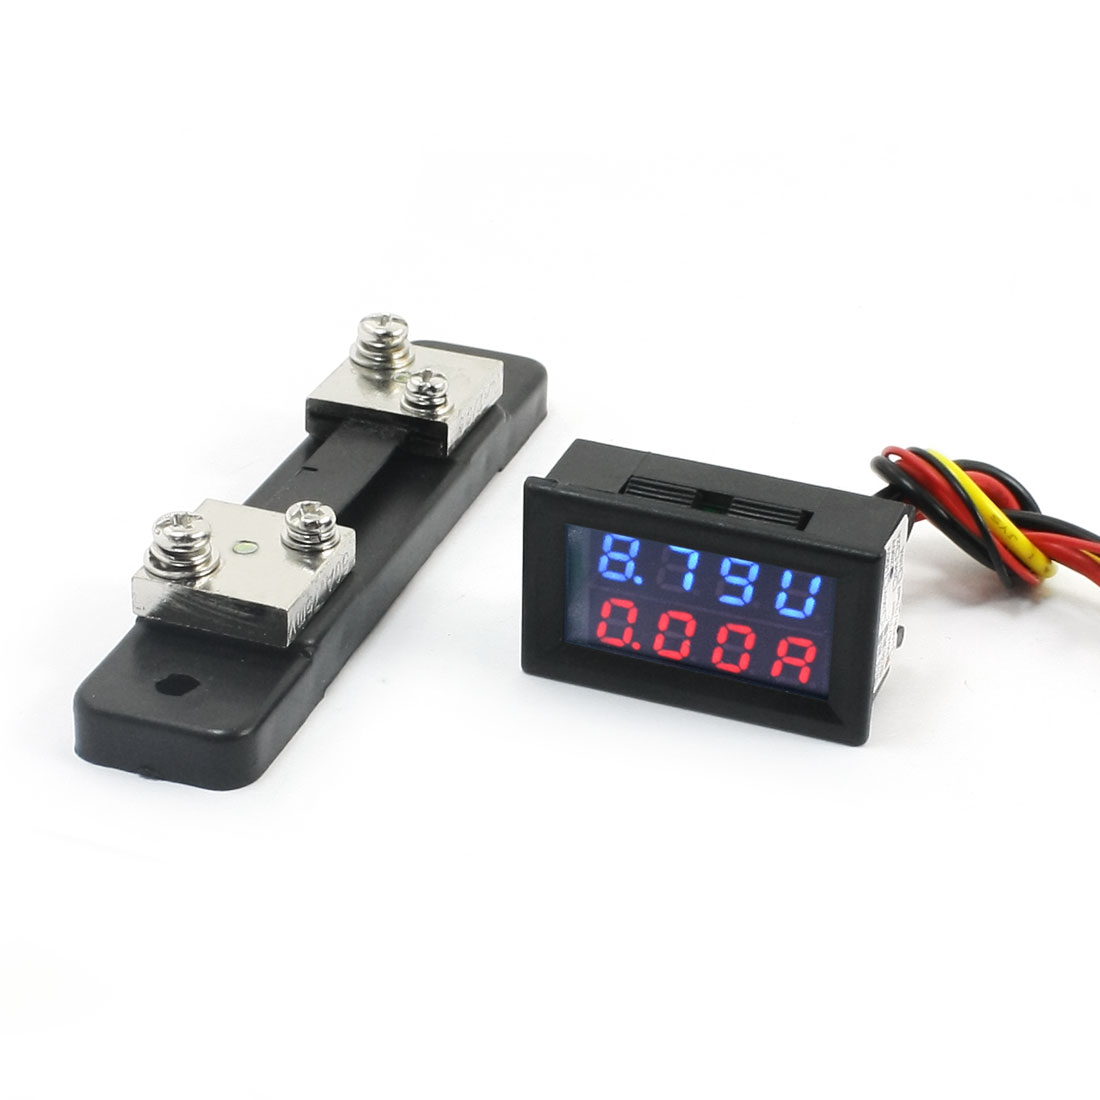 DC 0-200V 0-50A Red Blue Dual LED Digital Voltmeter Ammeter Voltage + Shunt